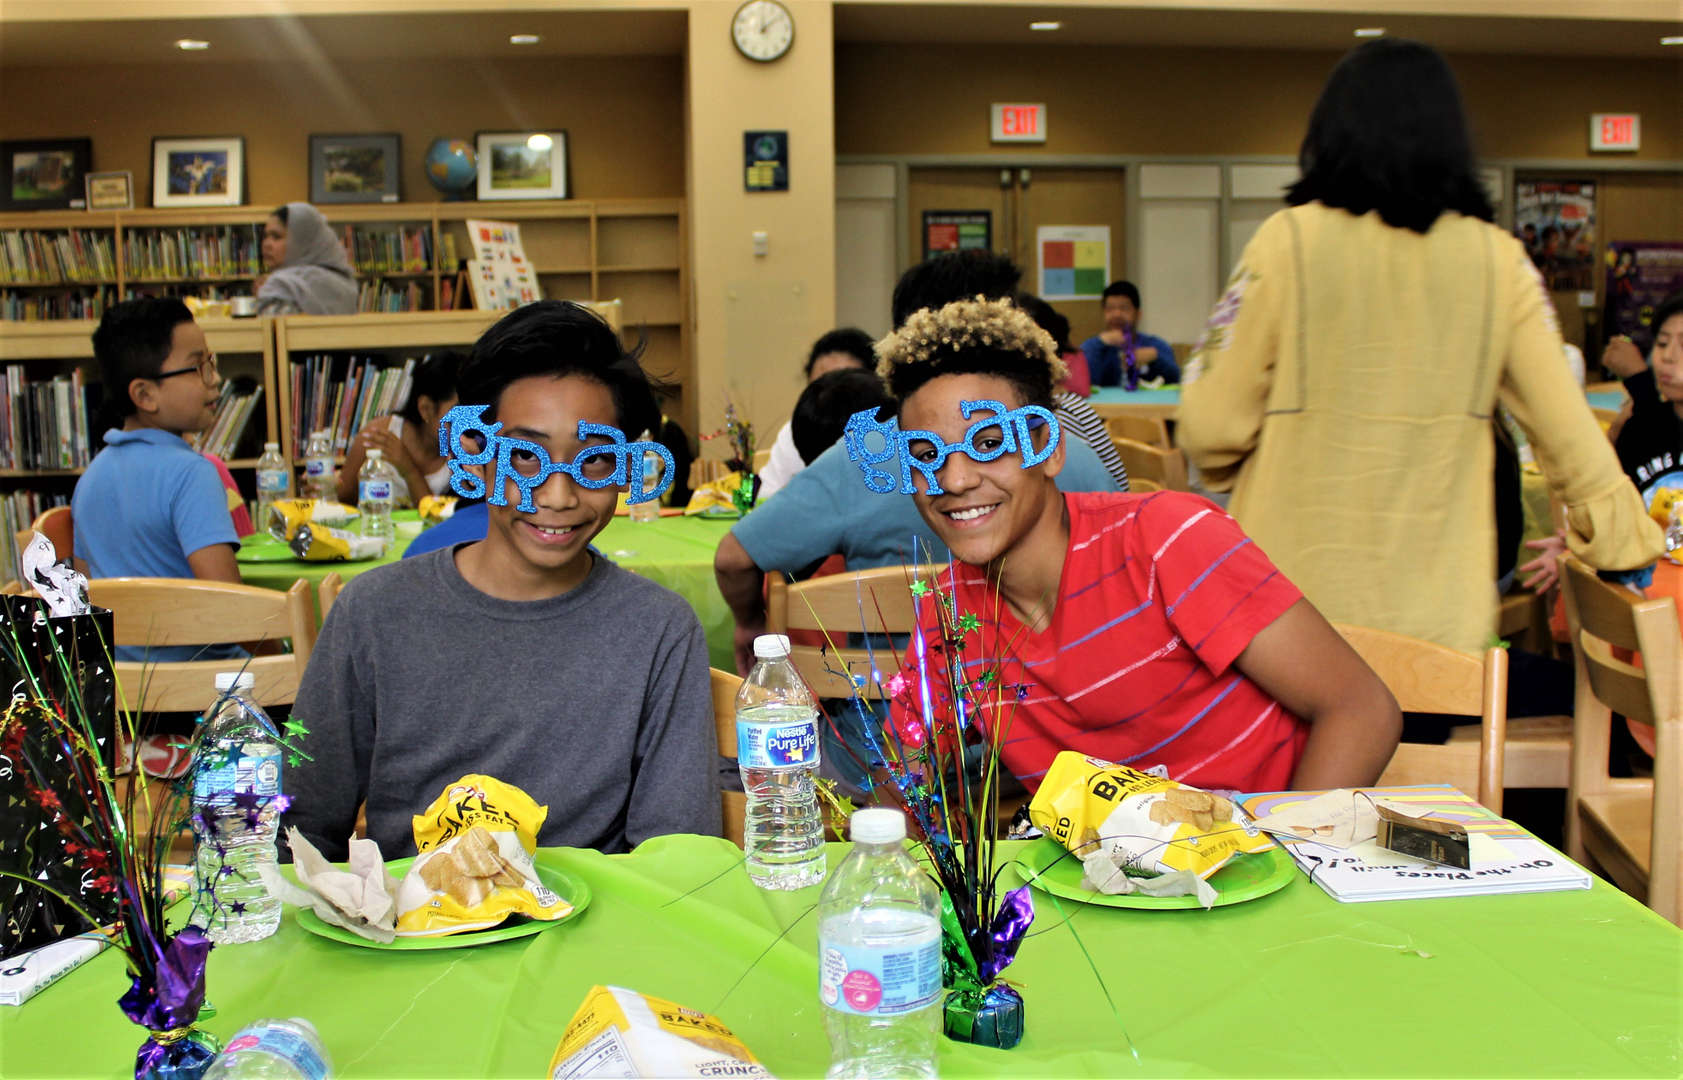 Eighth-graders showed off grad glasses they received at the luncheon.